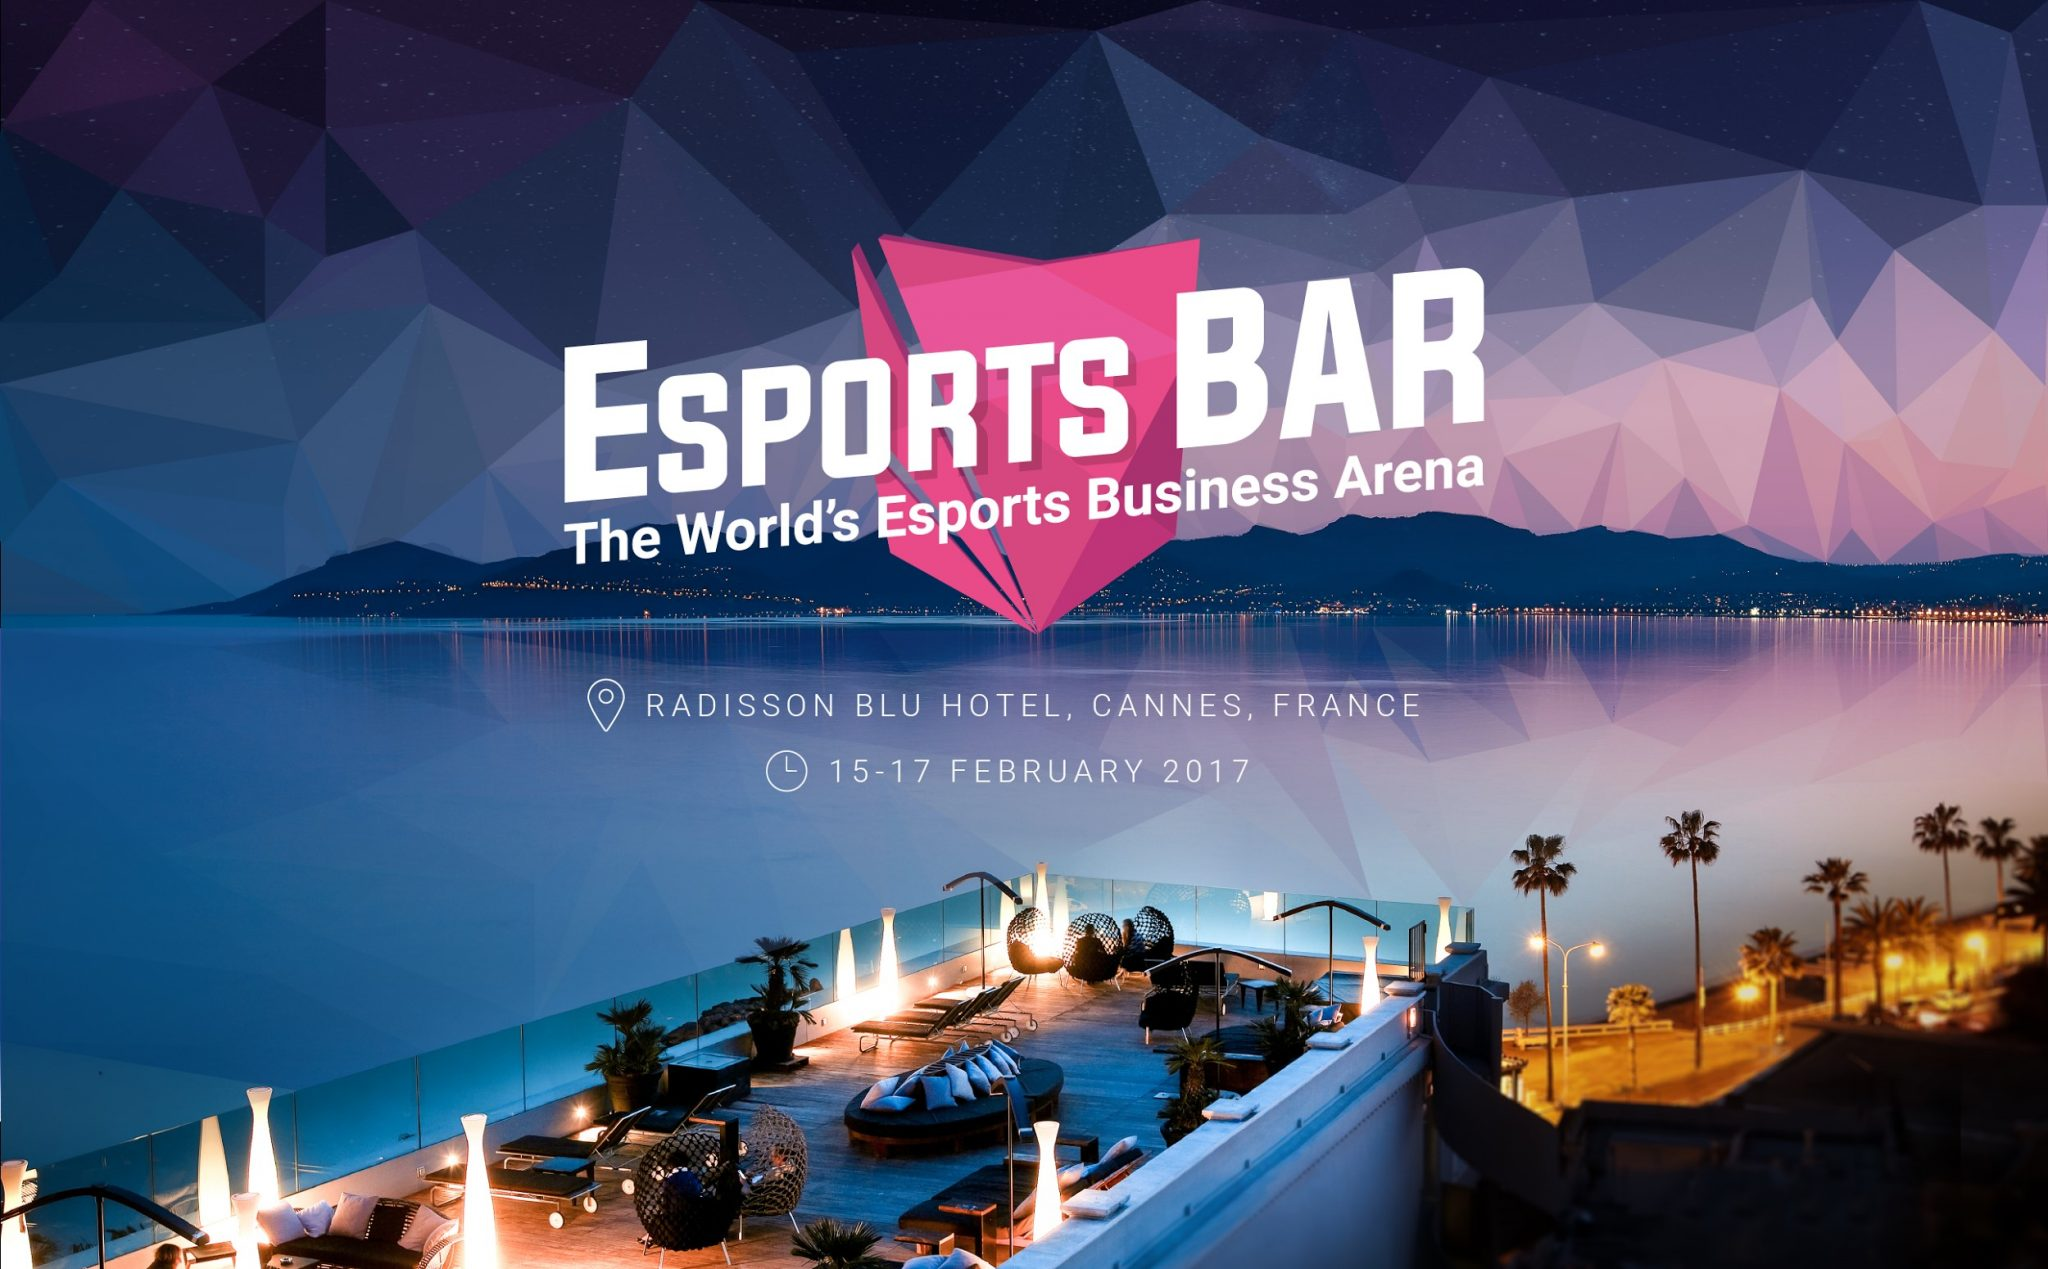 Cannes espsort BAR